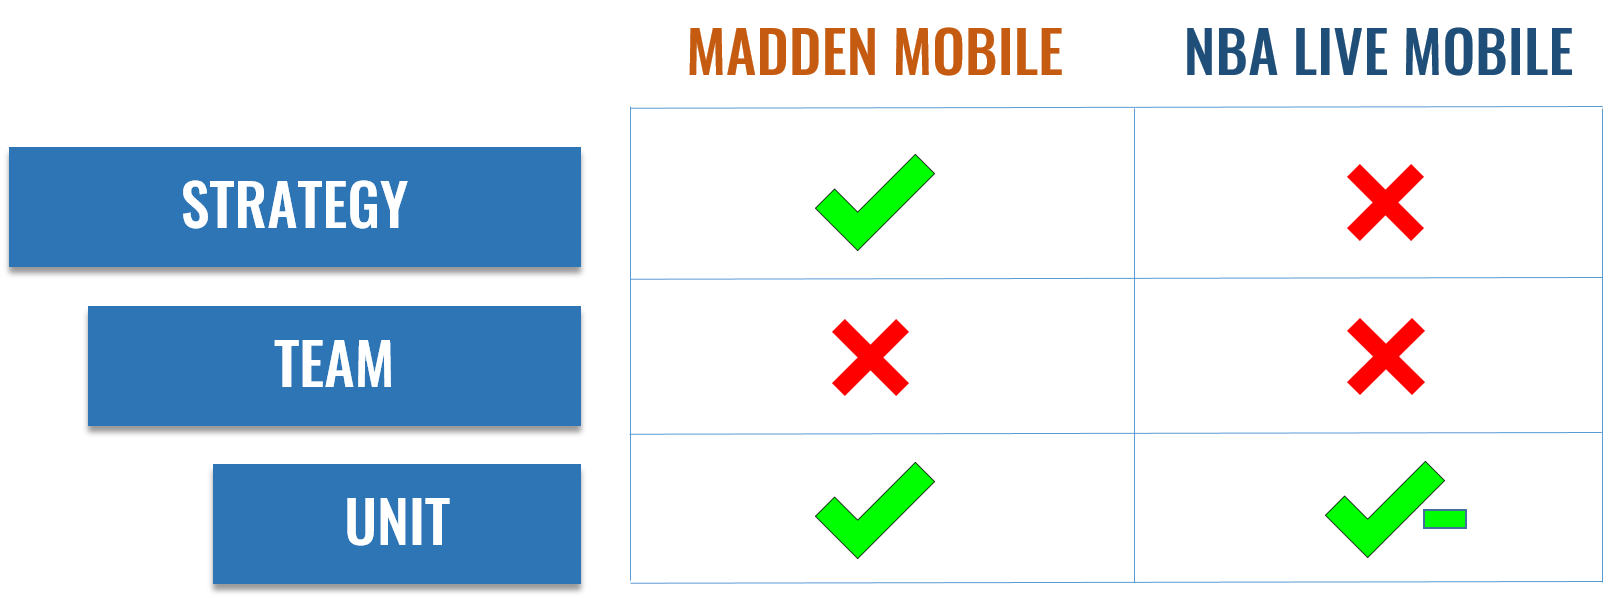 """Strategy, Team and Unit are the core elements of """"the puzzle"""" on Madden Mobile and NBA Live Mobile; while both games are not strong in hitting the Team element of the puzzle, Madden Mobile is able to satisfy the Strategy and Unit elements of the puzzle and create meaningful gameplay"""